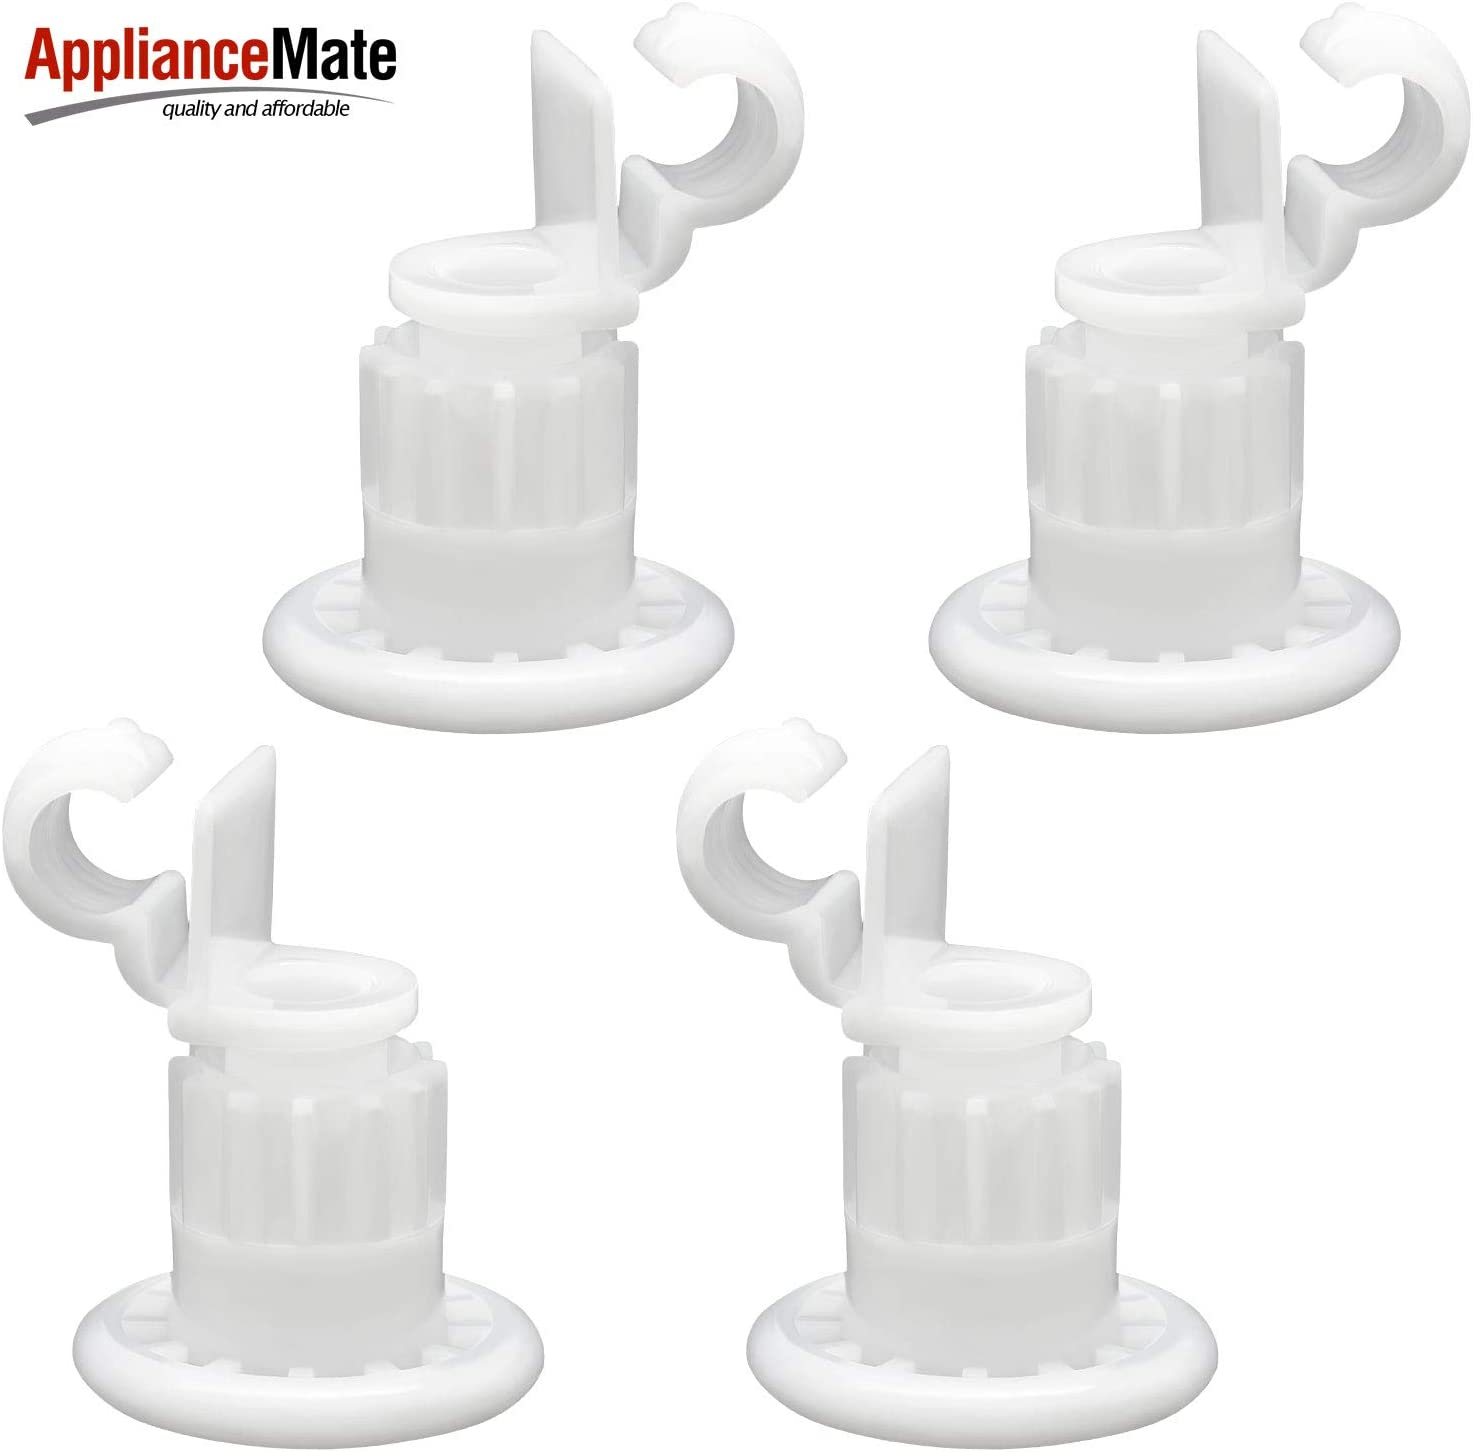 Appliancemate WD12X10327 (4pack) Rack Roller and stud assembly Kit Compatible With General Electric Dishwasher